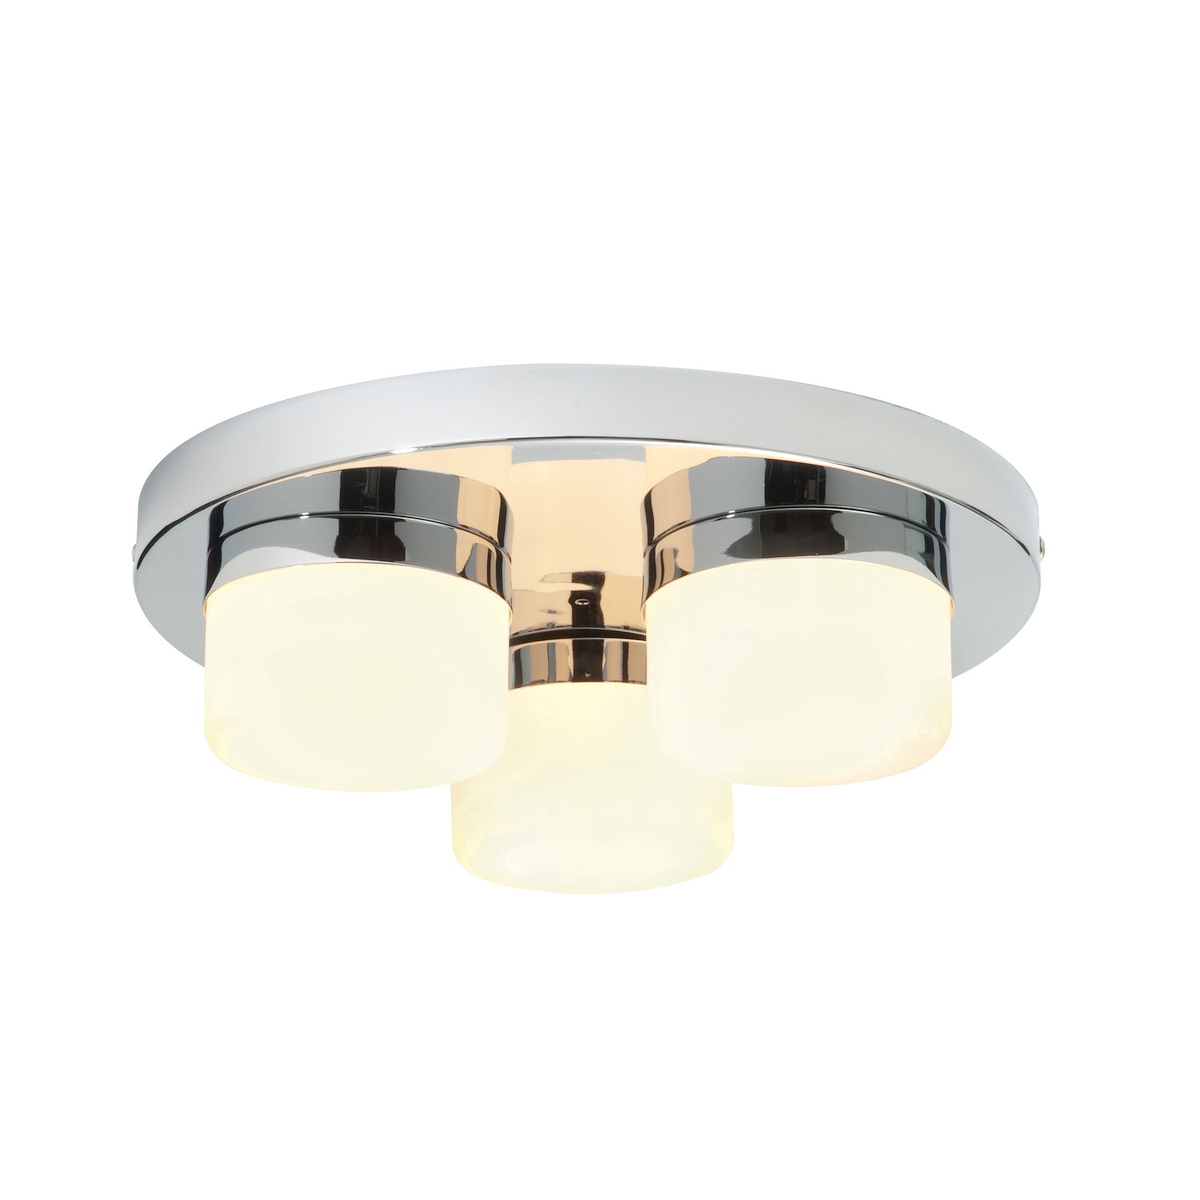 Saxby 34200 Pure 3 Light Bathroom Ceiling Pendant G9